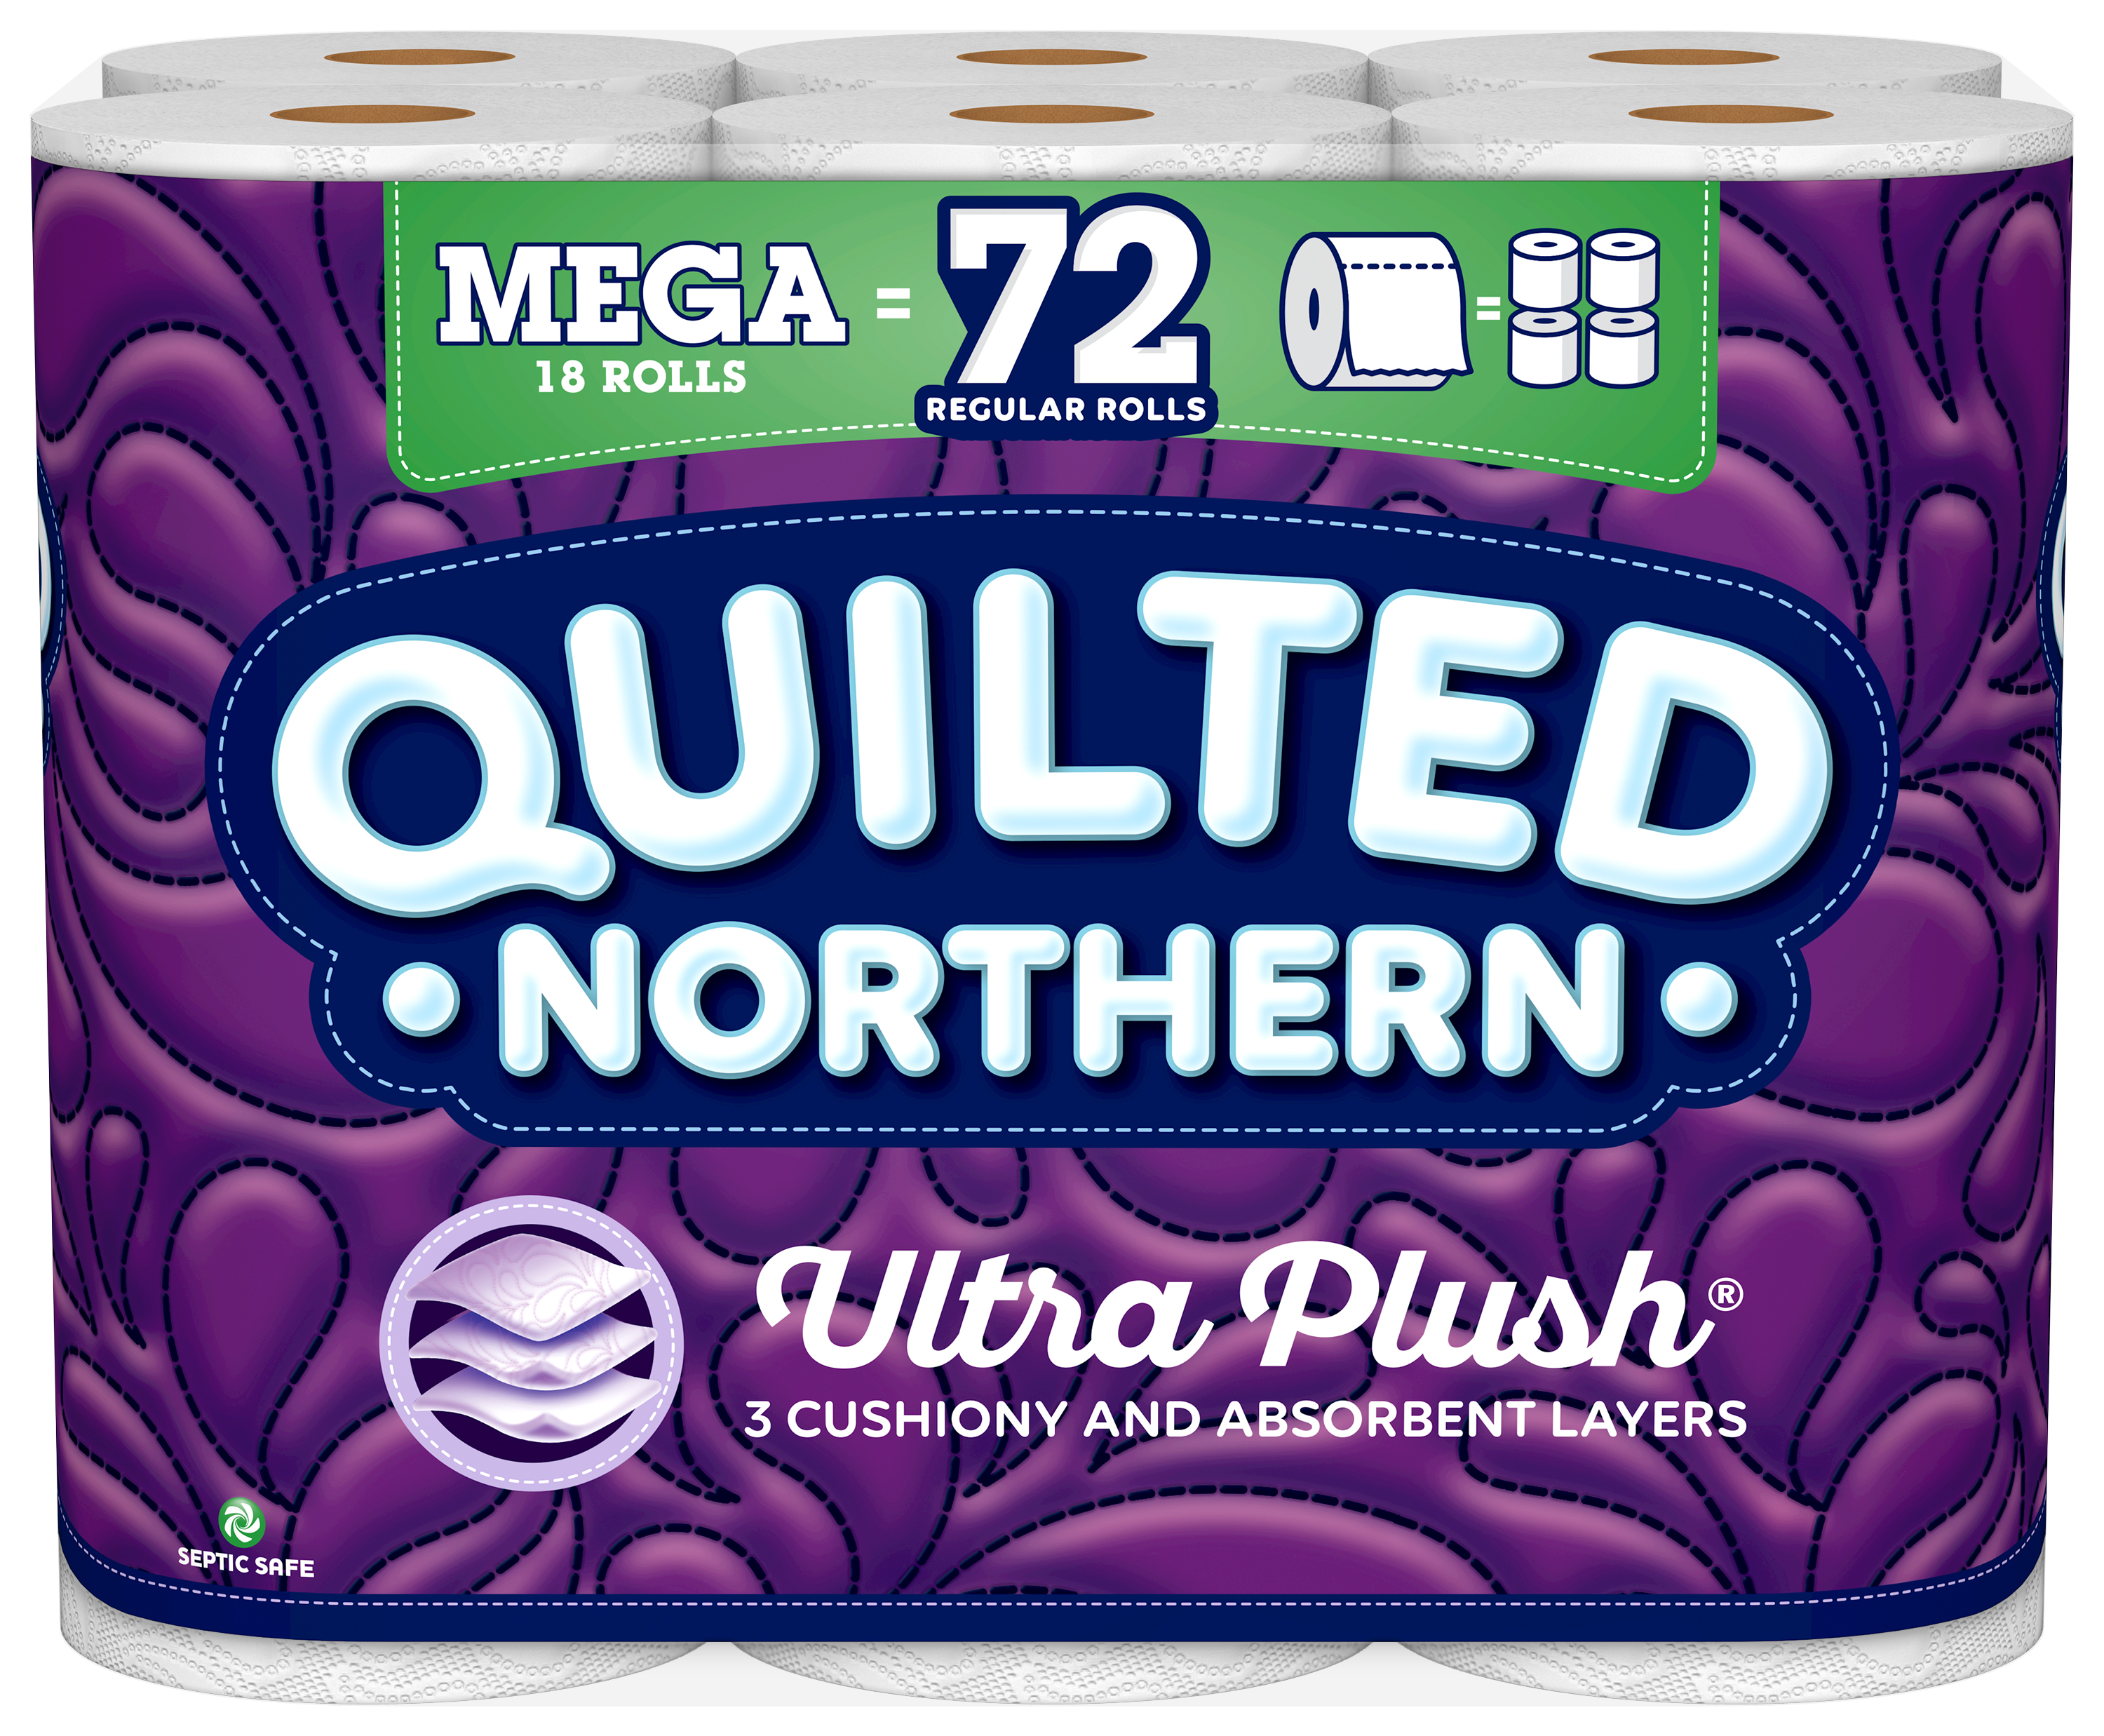 Quilted Northern Ultra Plush, 18 Mega Rolls, Toilet Paper by Georgia Pacific NA Consumer Prod